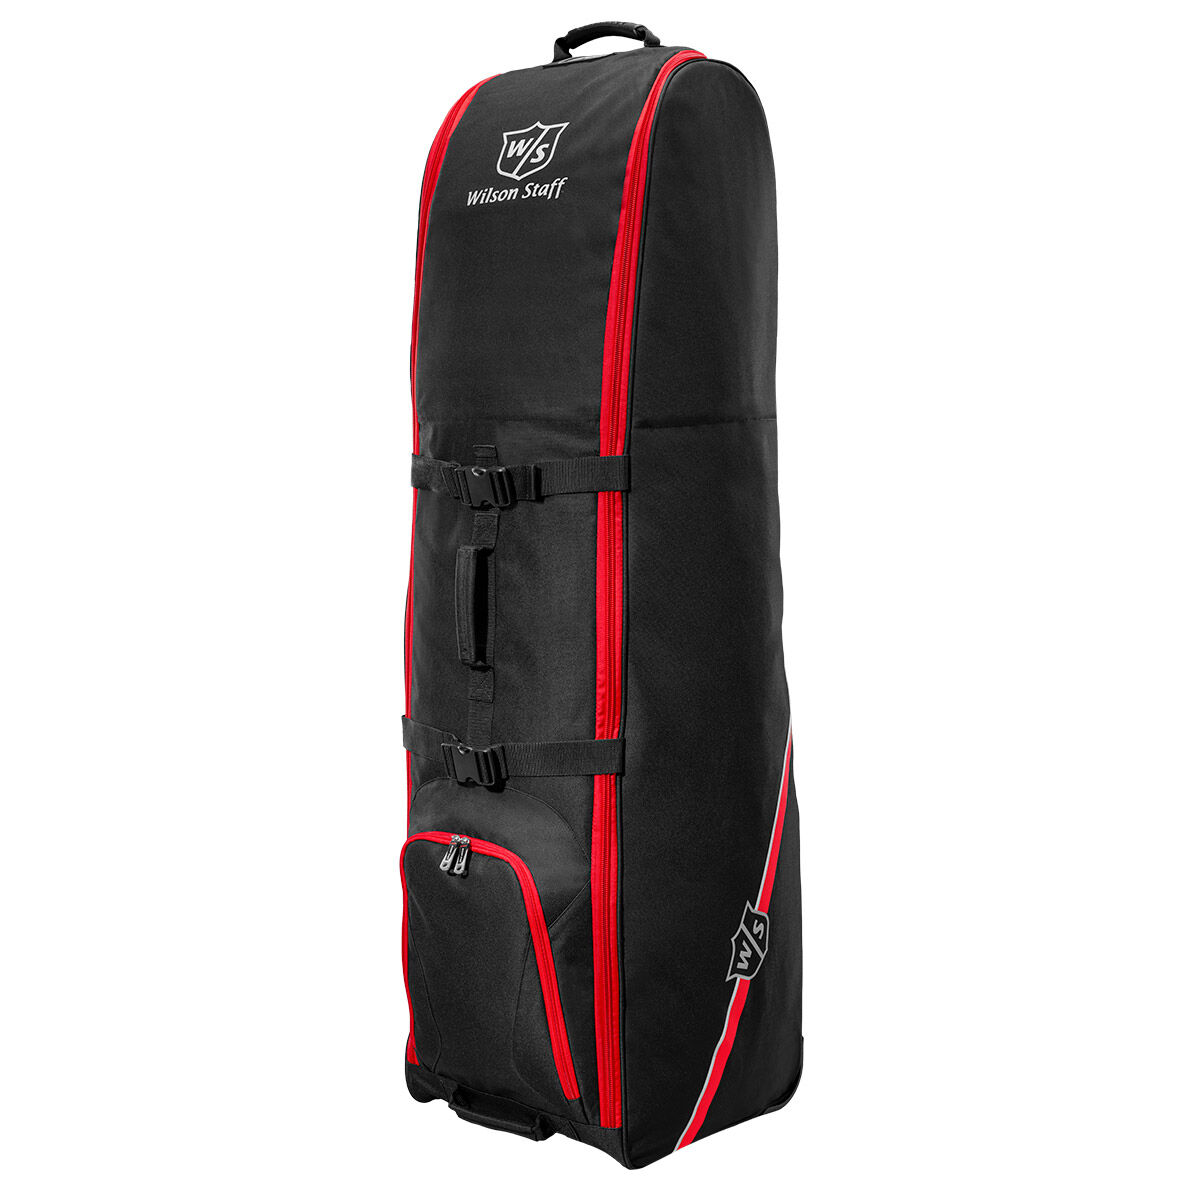 Wilson Staff Black Wheeled Travel Cover, One Size | American Golf